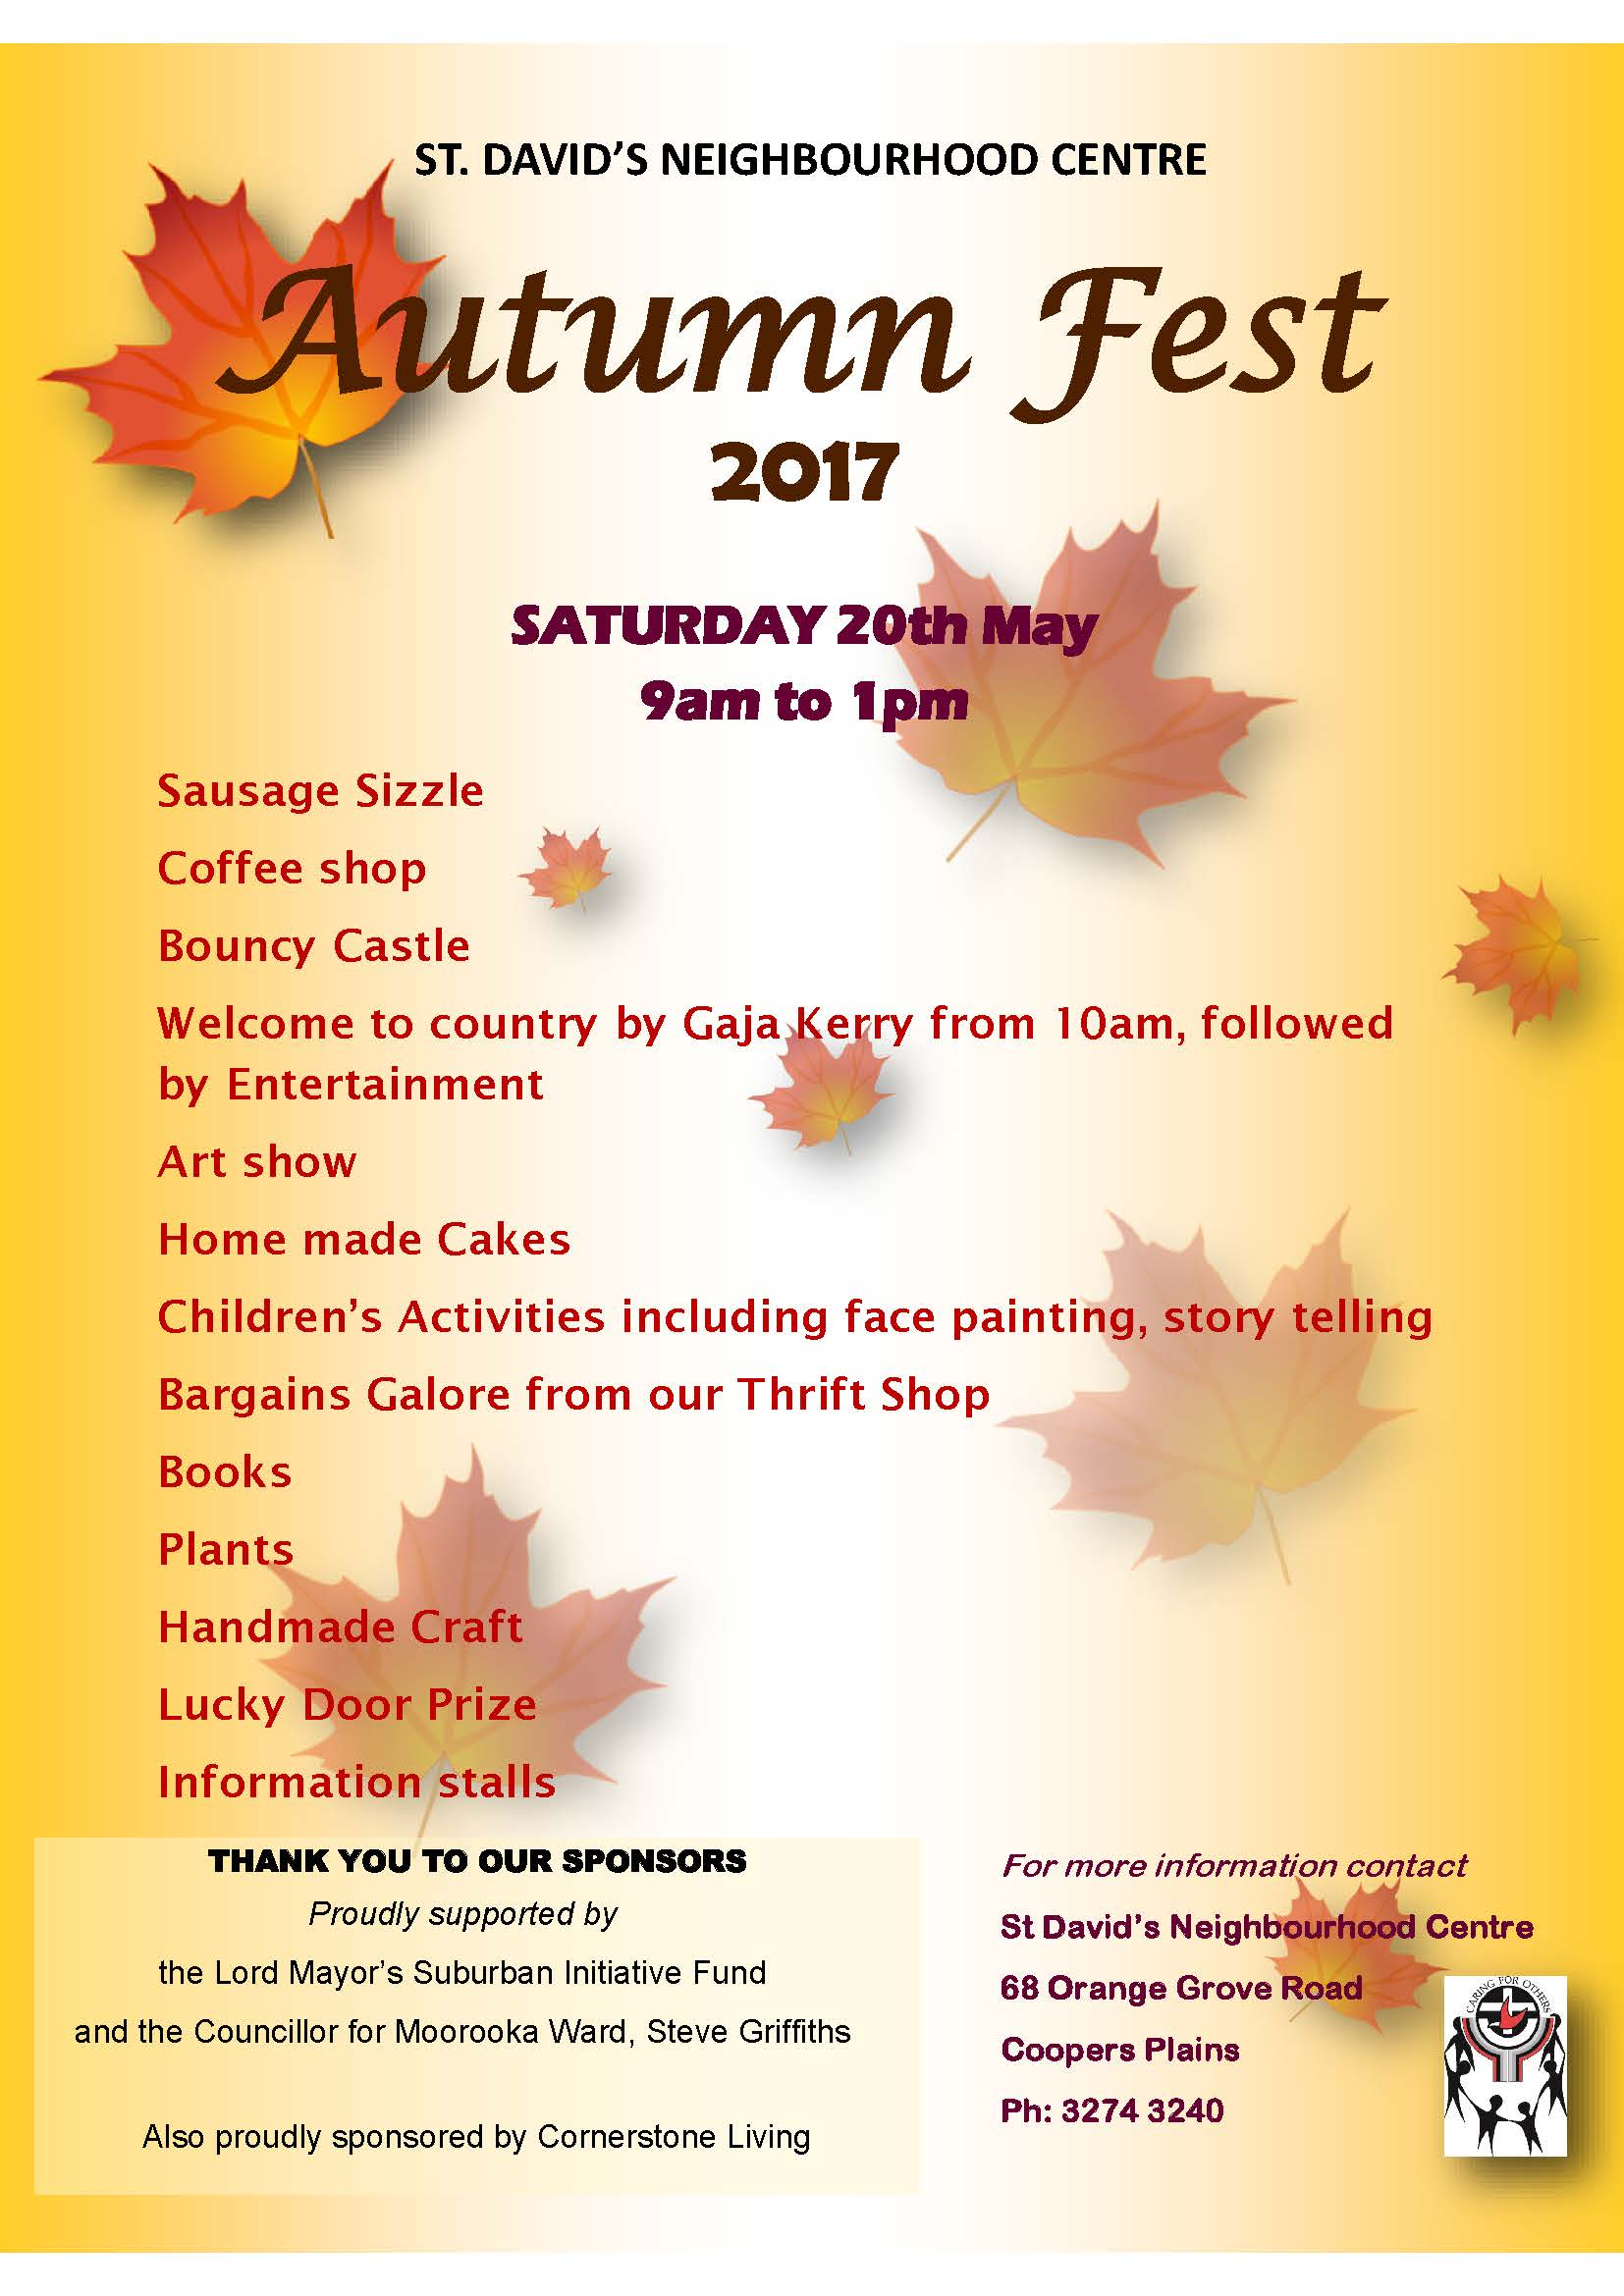 Autumn_Fest_Flyer.jpg